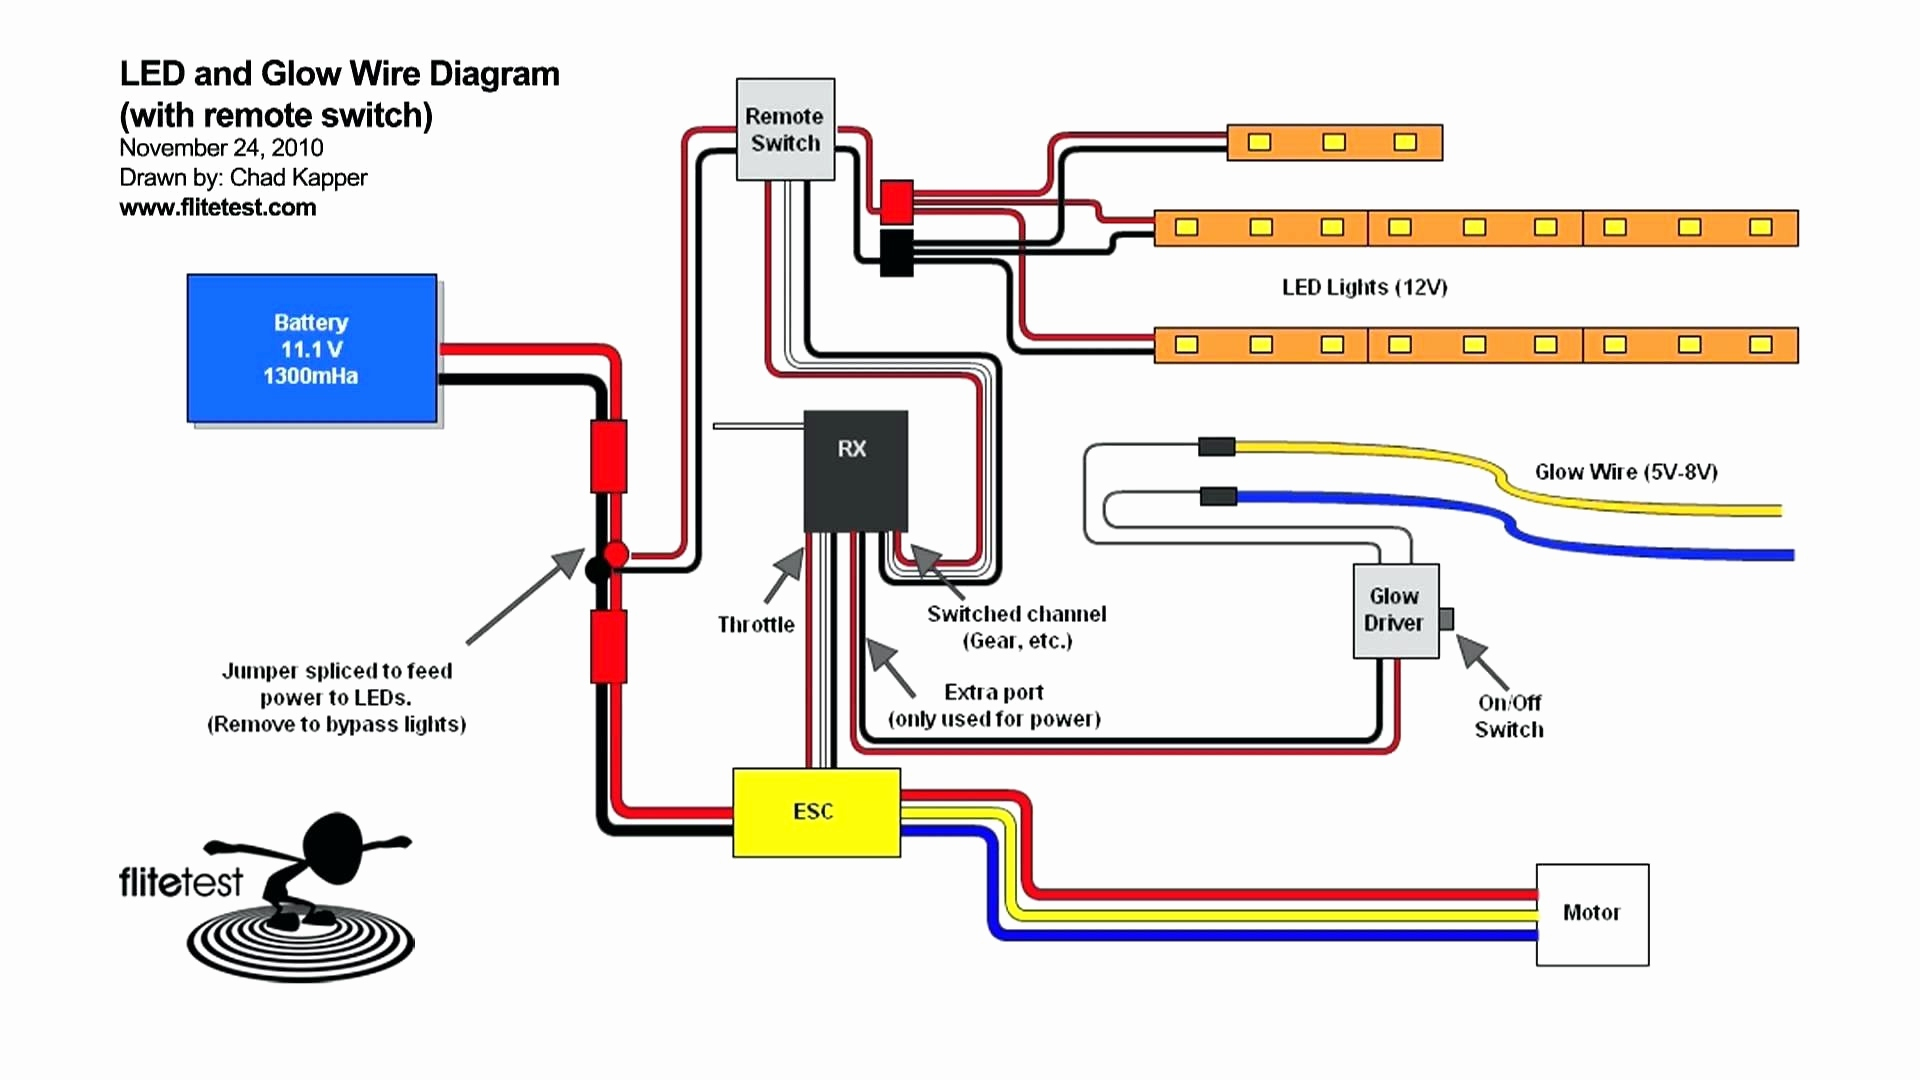 Led Light 12V 3 Wire Wiring Diagram | Wiring Diagram - Led Trailer Wiring Diagram